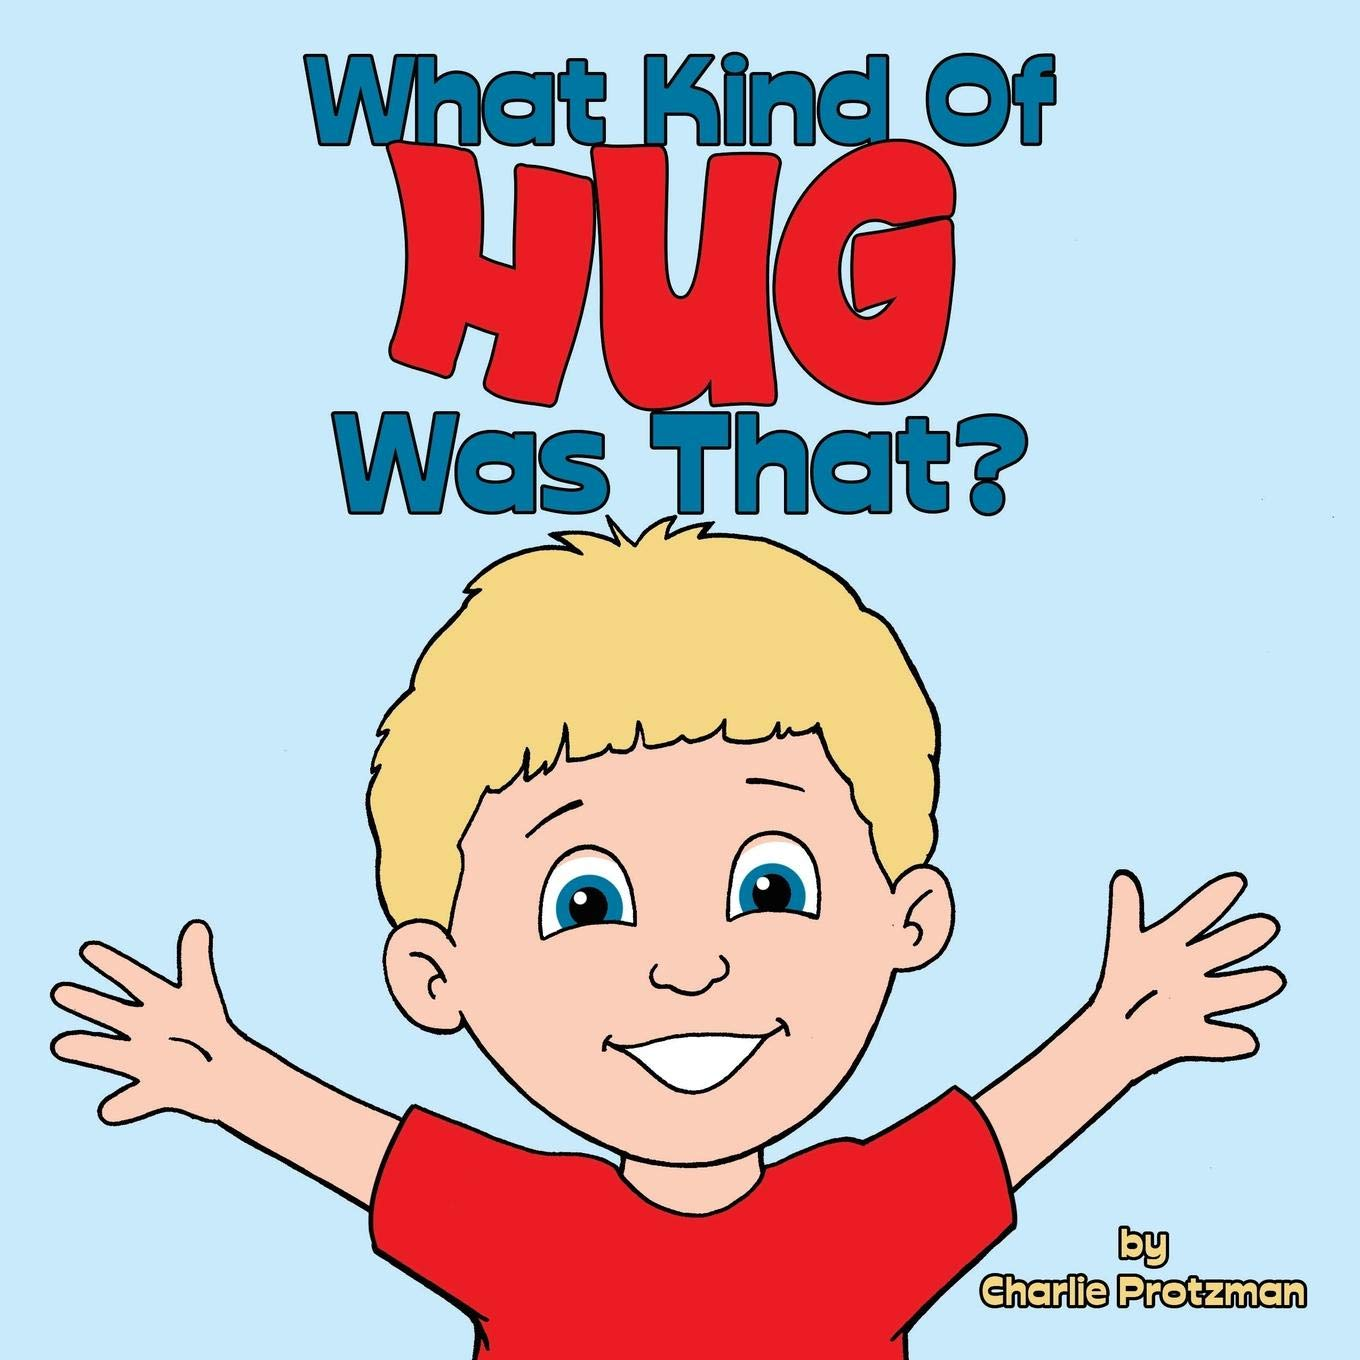 What Kind of Hug Was That?: Charlie Protzman: 9781458221544